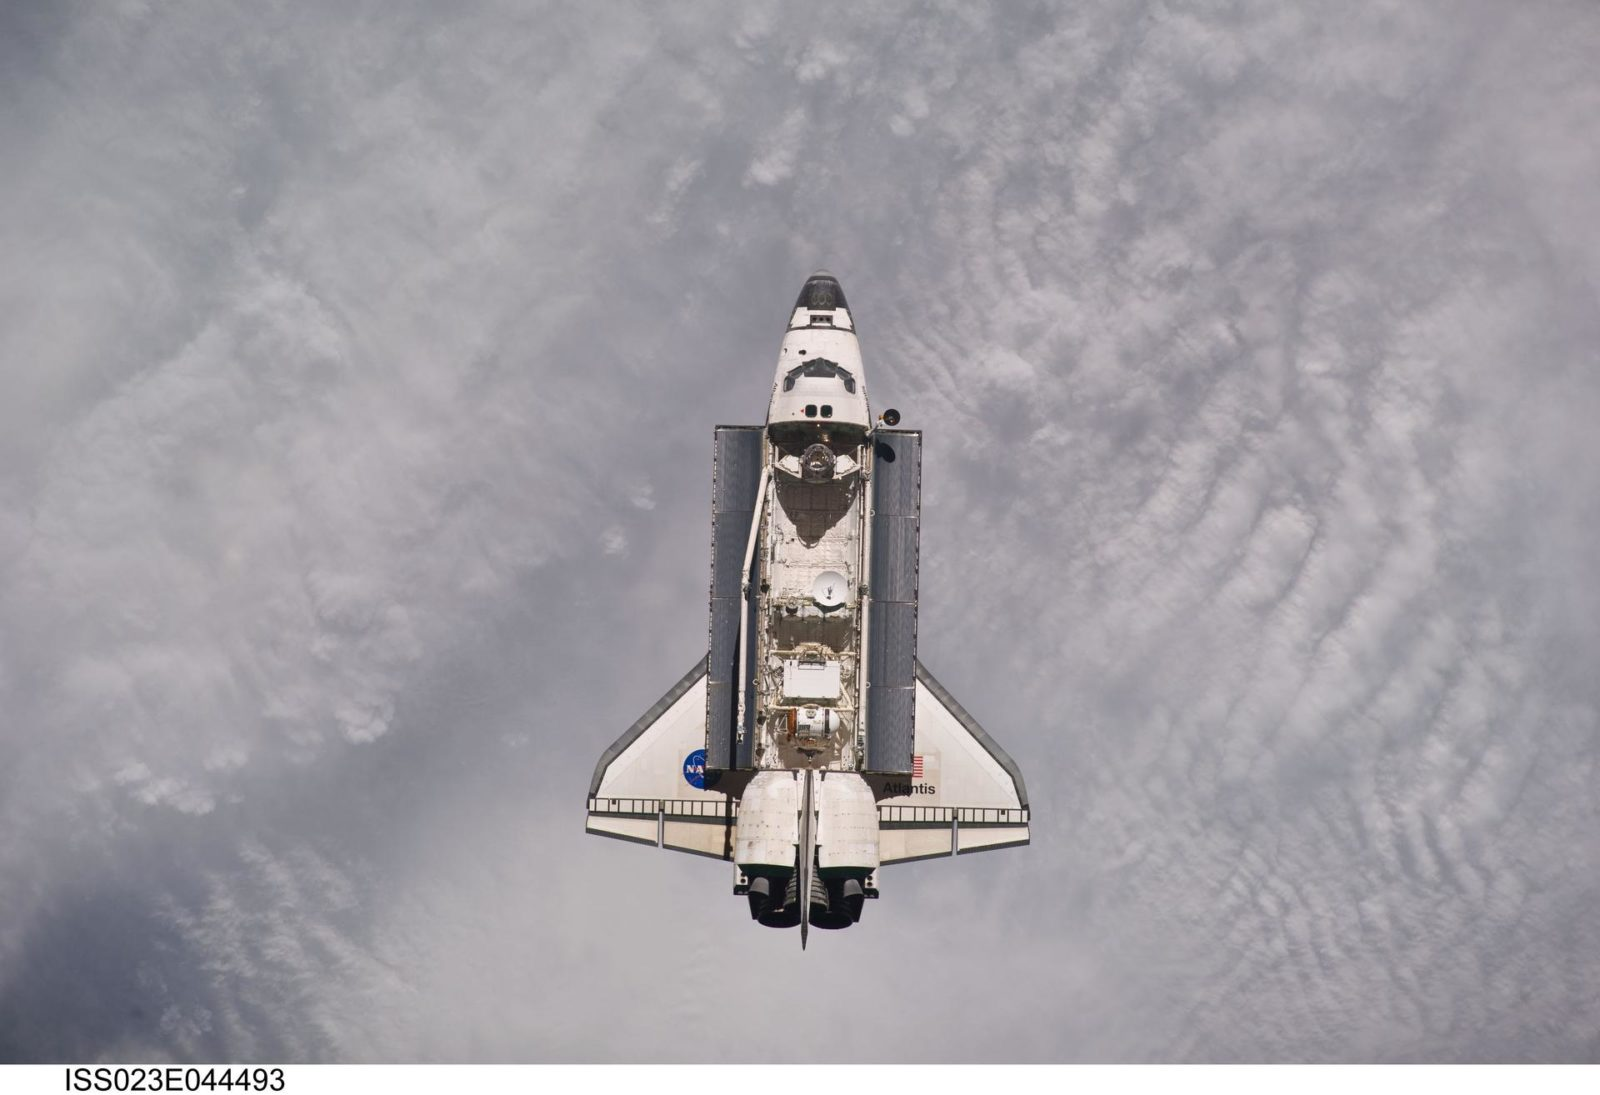 Atlantis on Approach to ISS during the STS-132 Mission